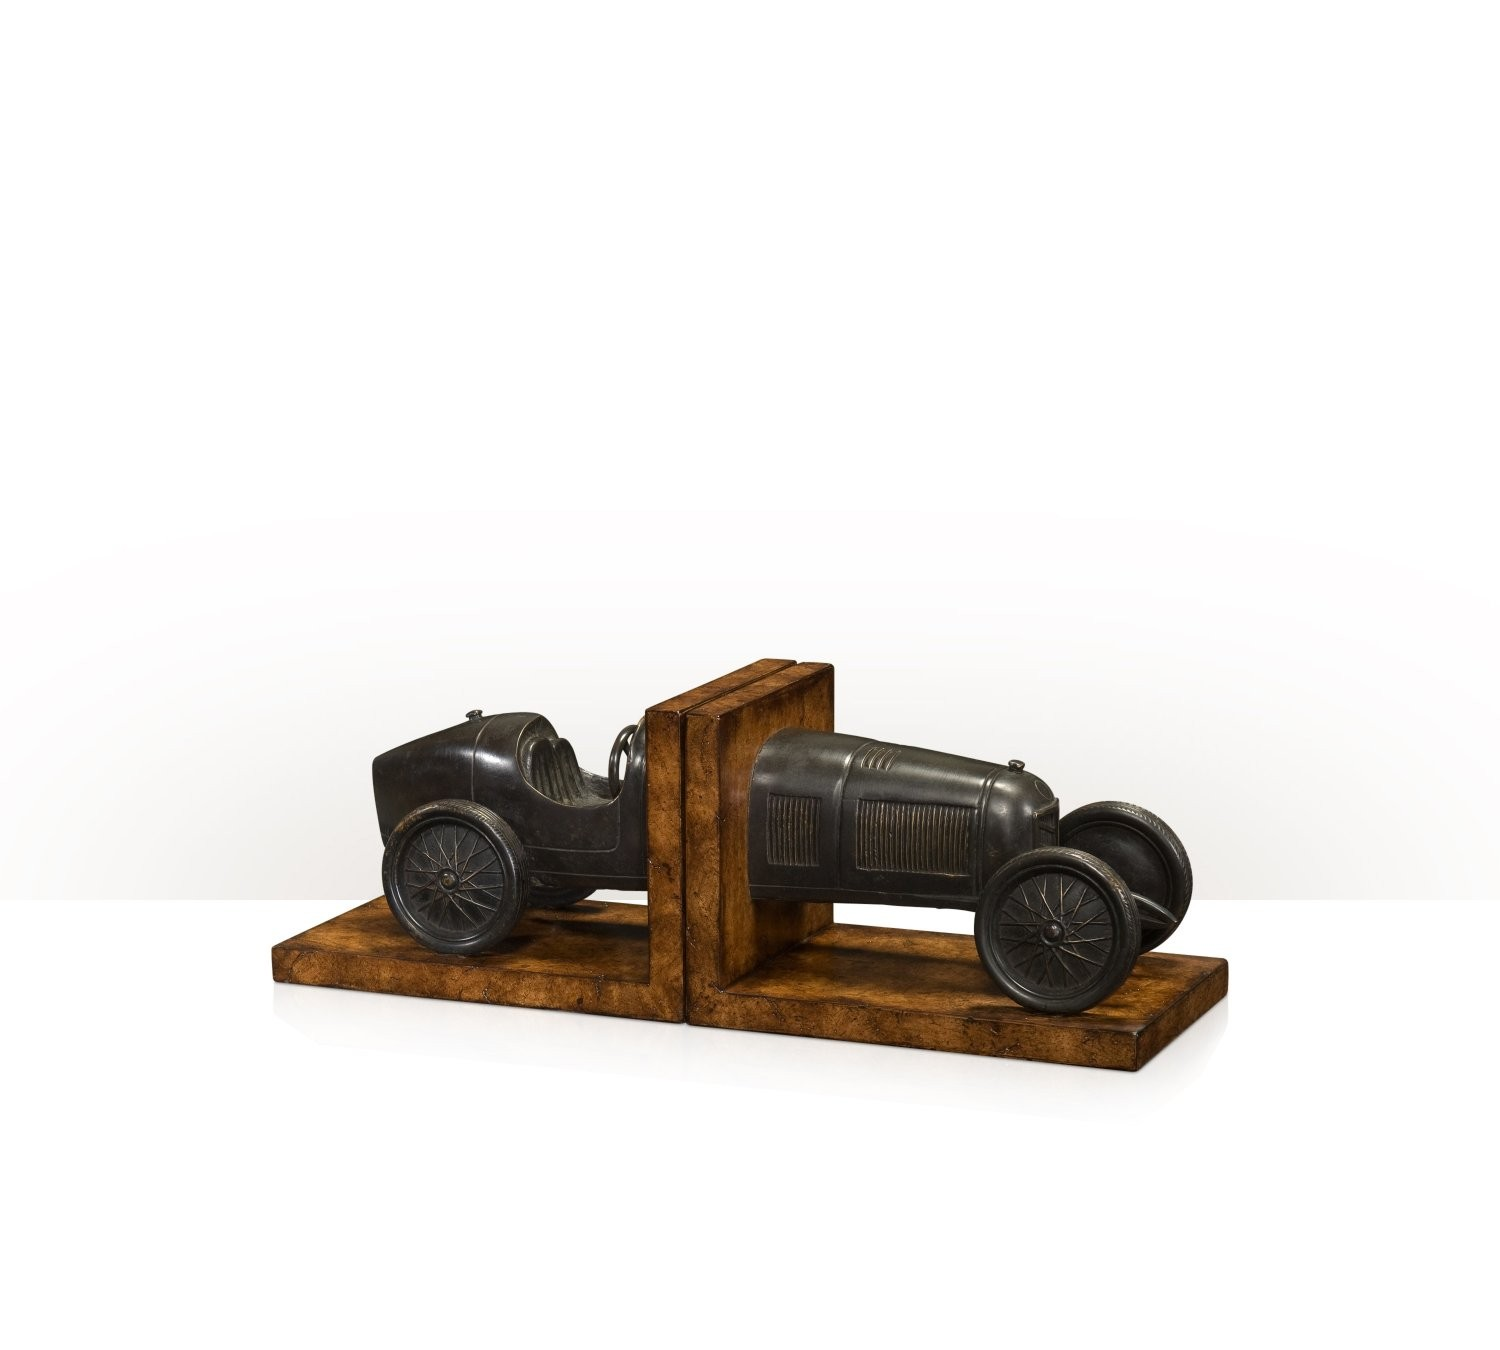 Brass model of car as bookends